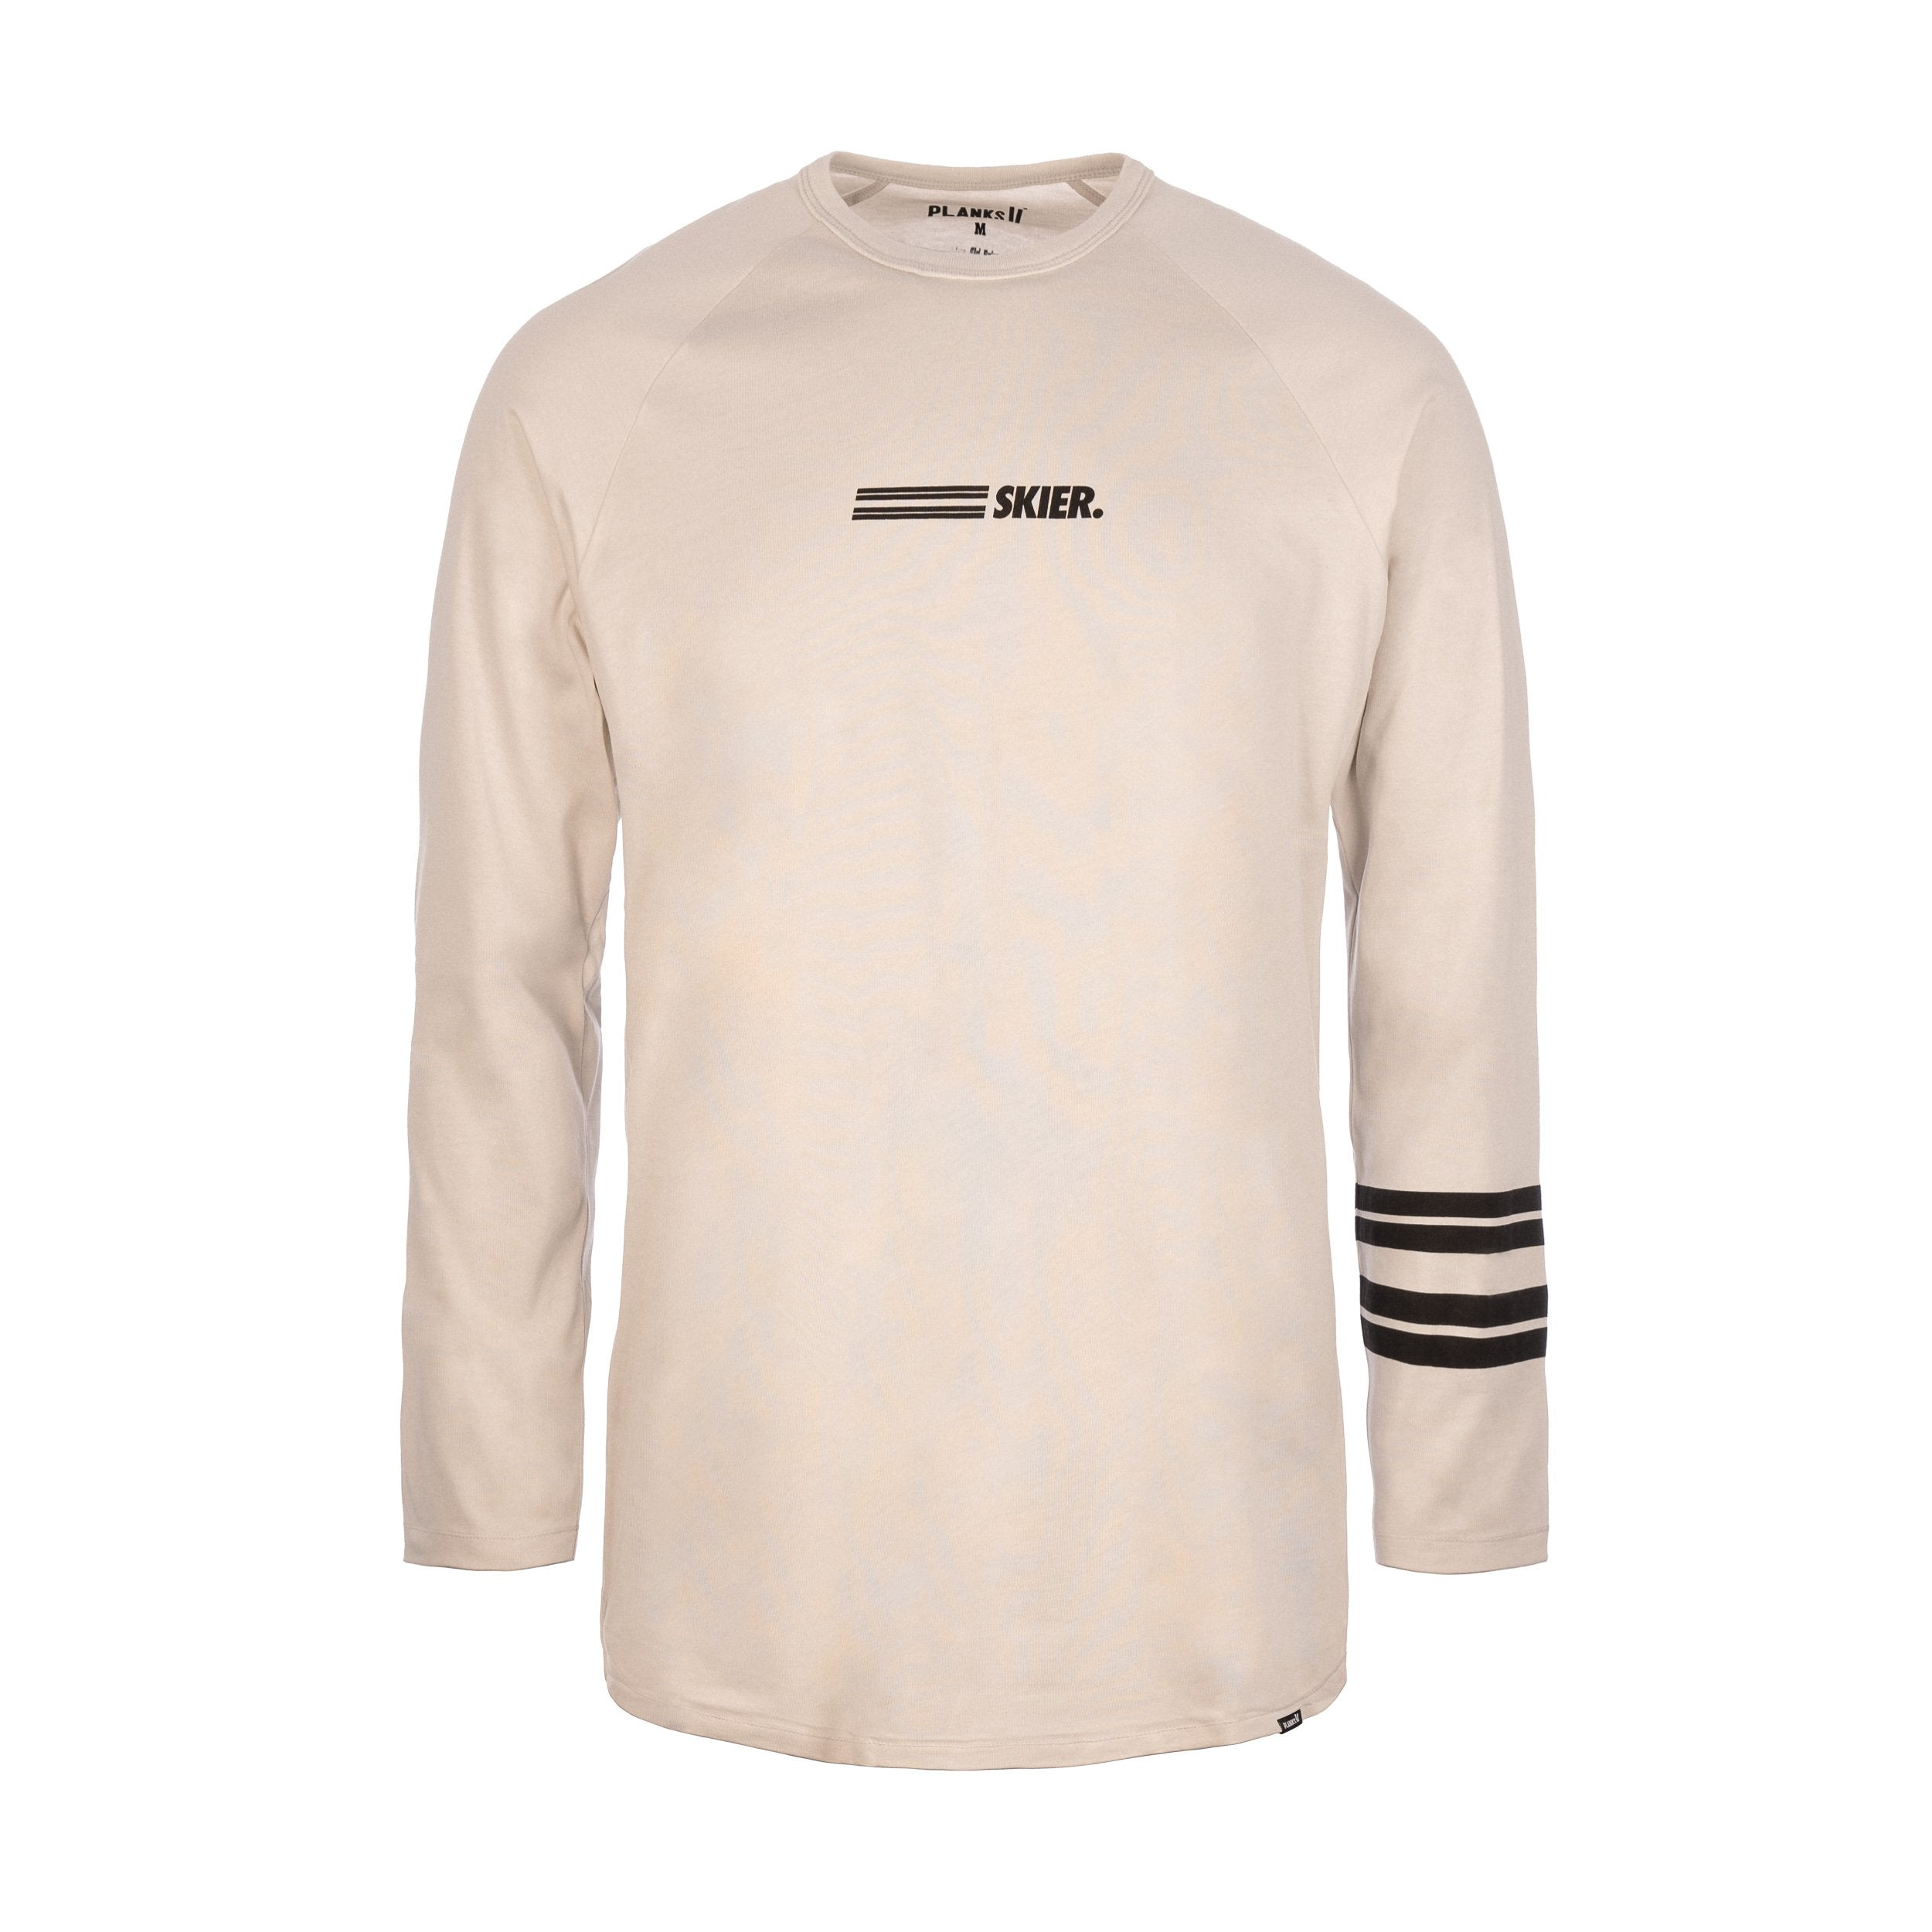 Planks Skier Long sleeve t-shirt